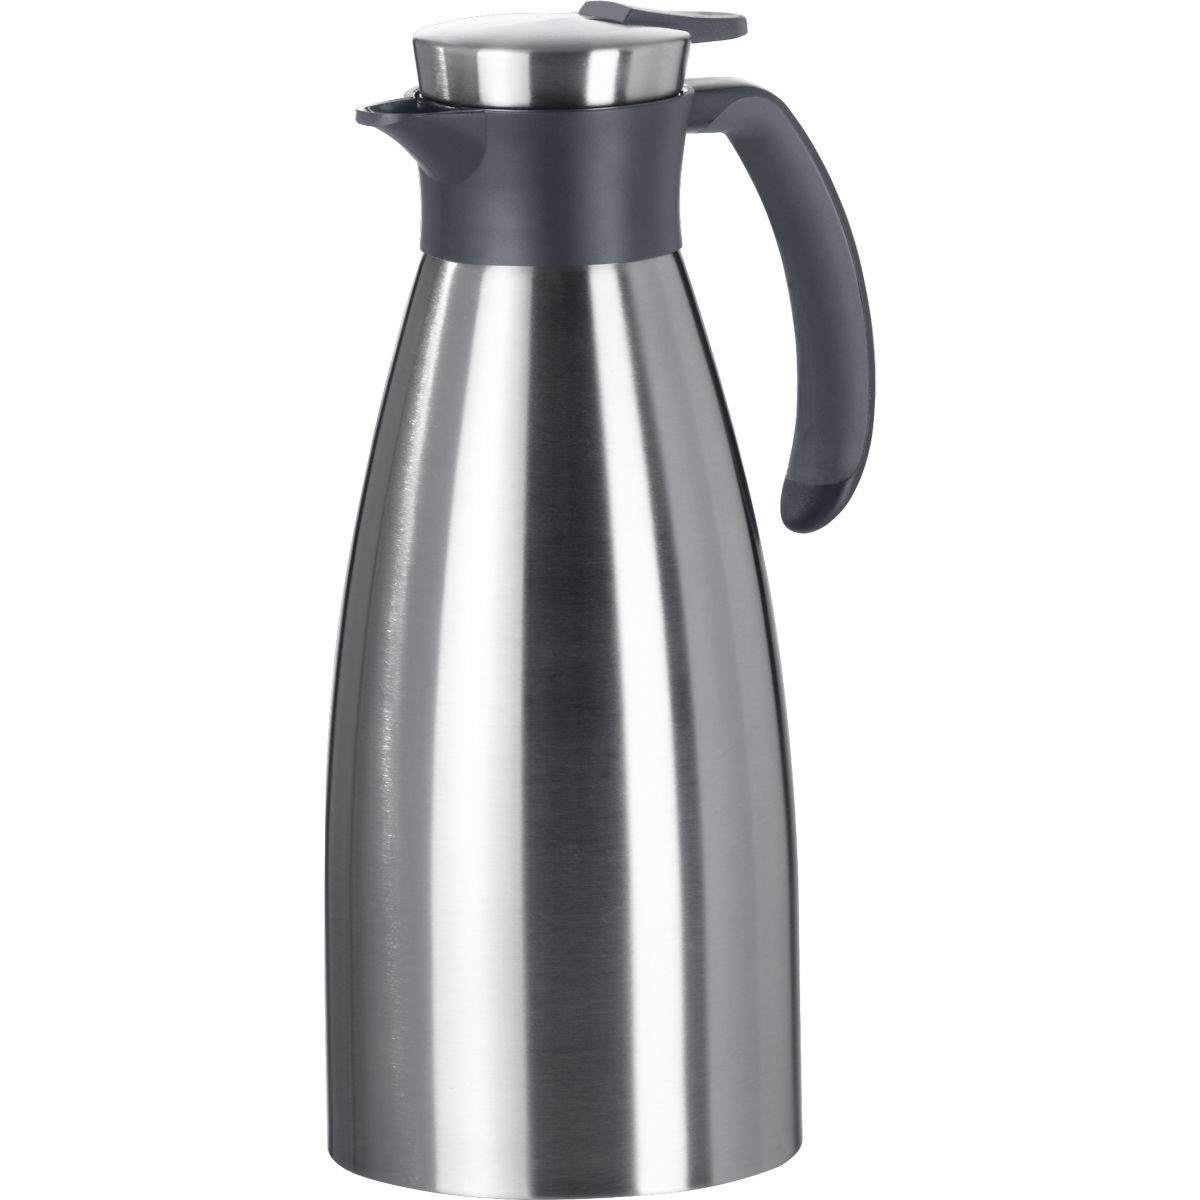 Bouteille isotherme EMSA isotherme inox/noir 1.5L